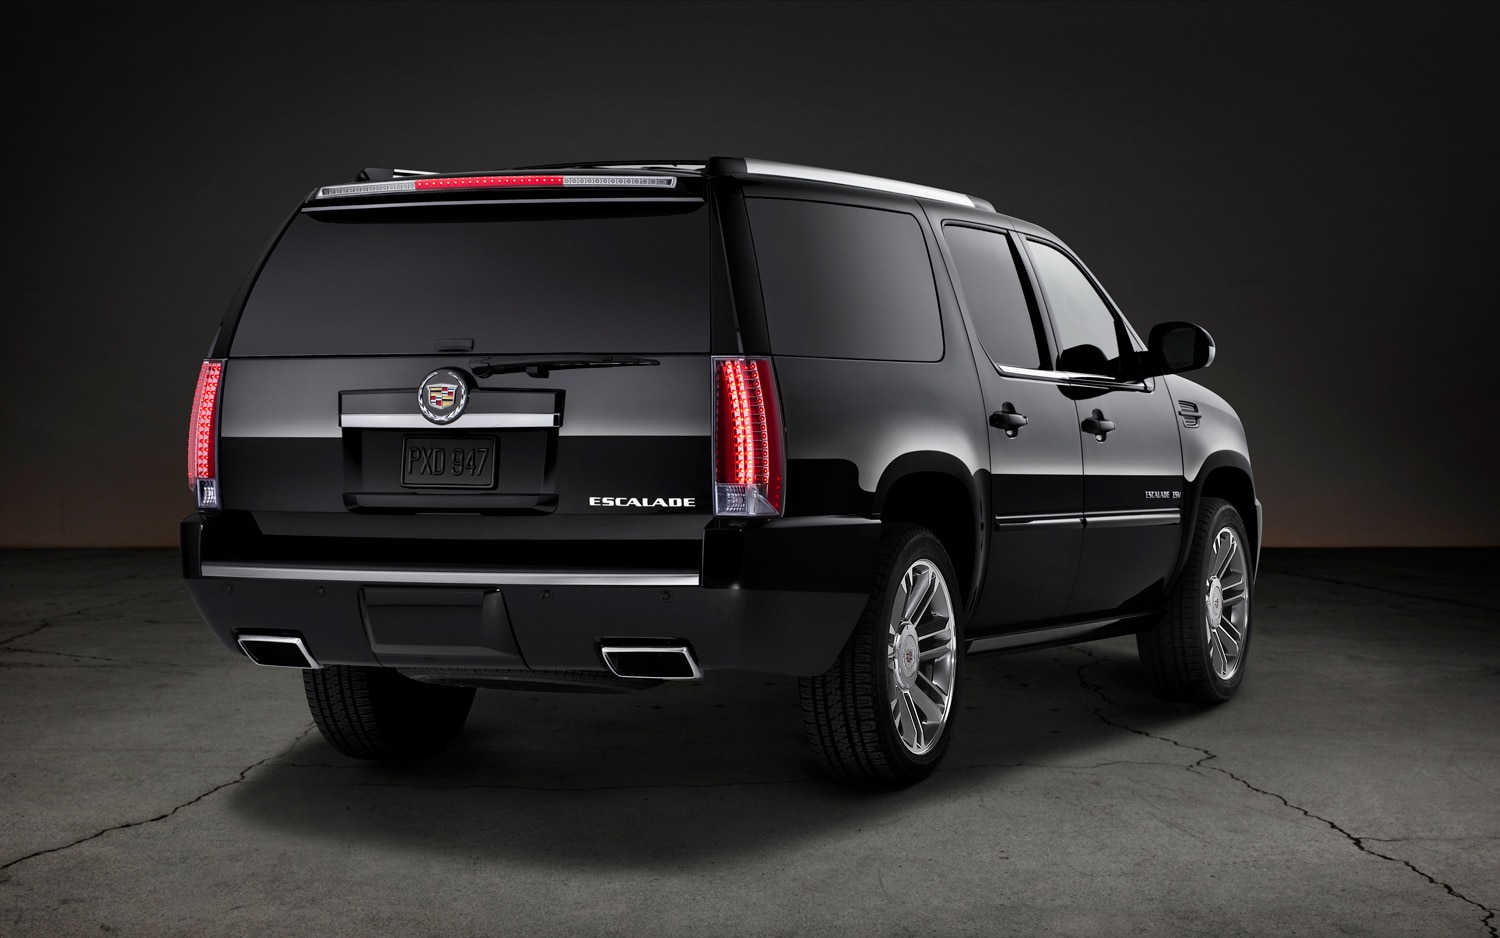 2013 Cadillac Escalade ESV Premium Rear Three Quarters